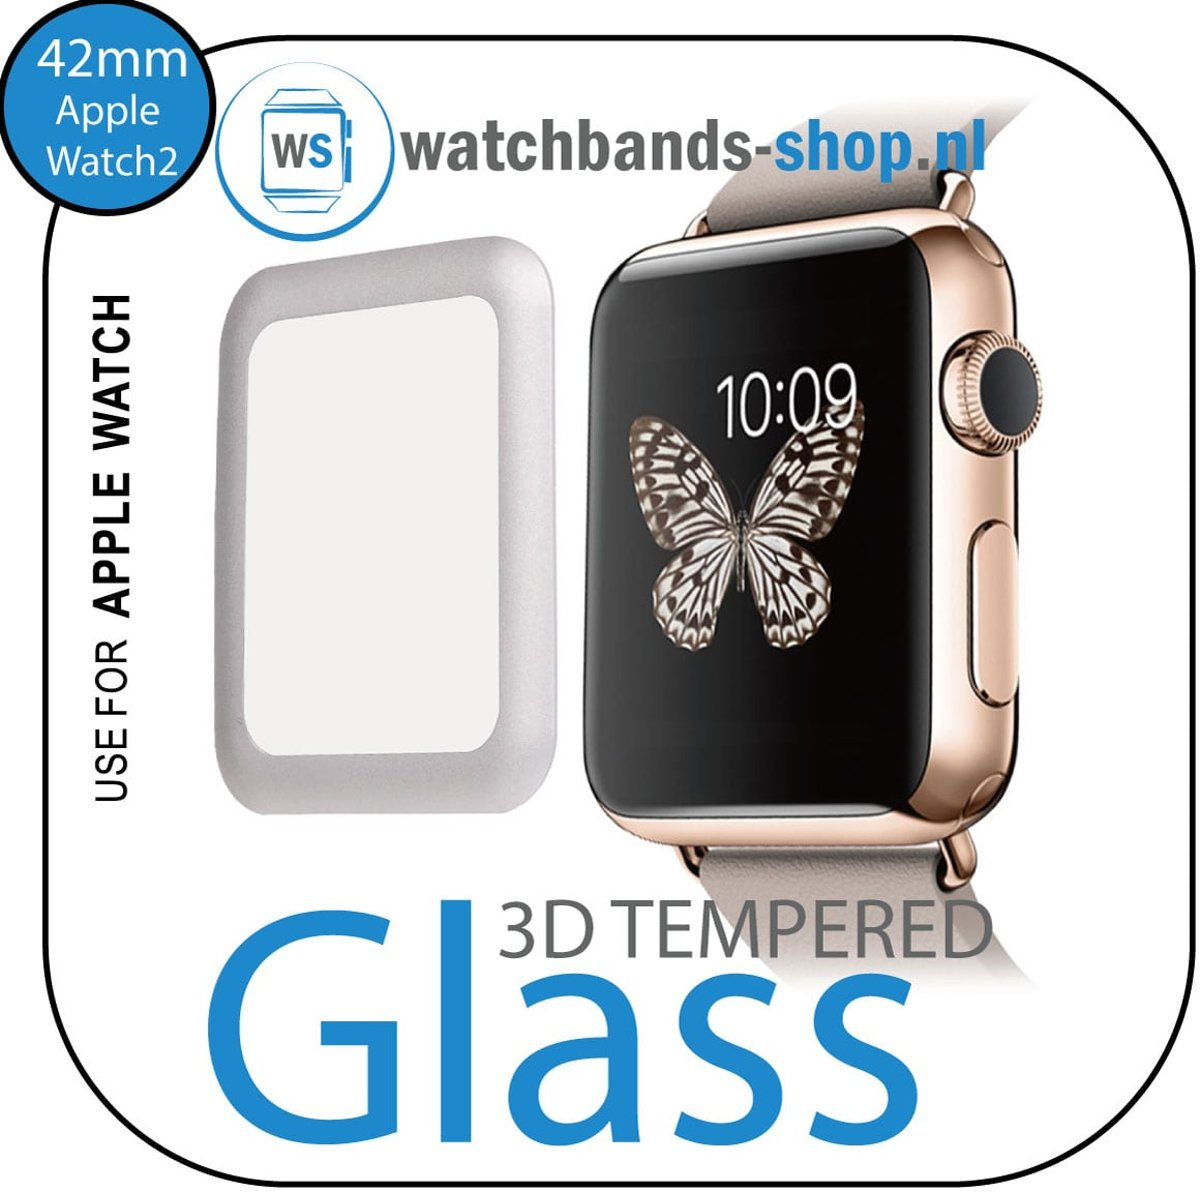 42mm full Cover 3D Tempered Glass Screen Protector For Apple watch / iWatch 2 silver edge Watchbands-shop.nl kopen